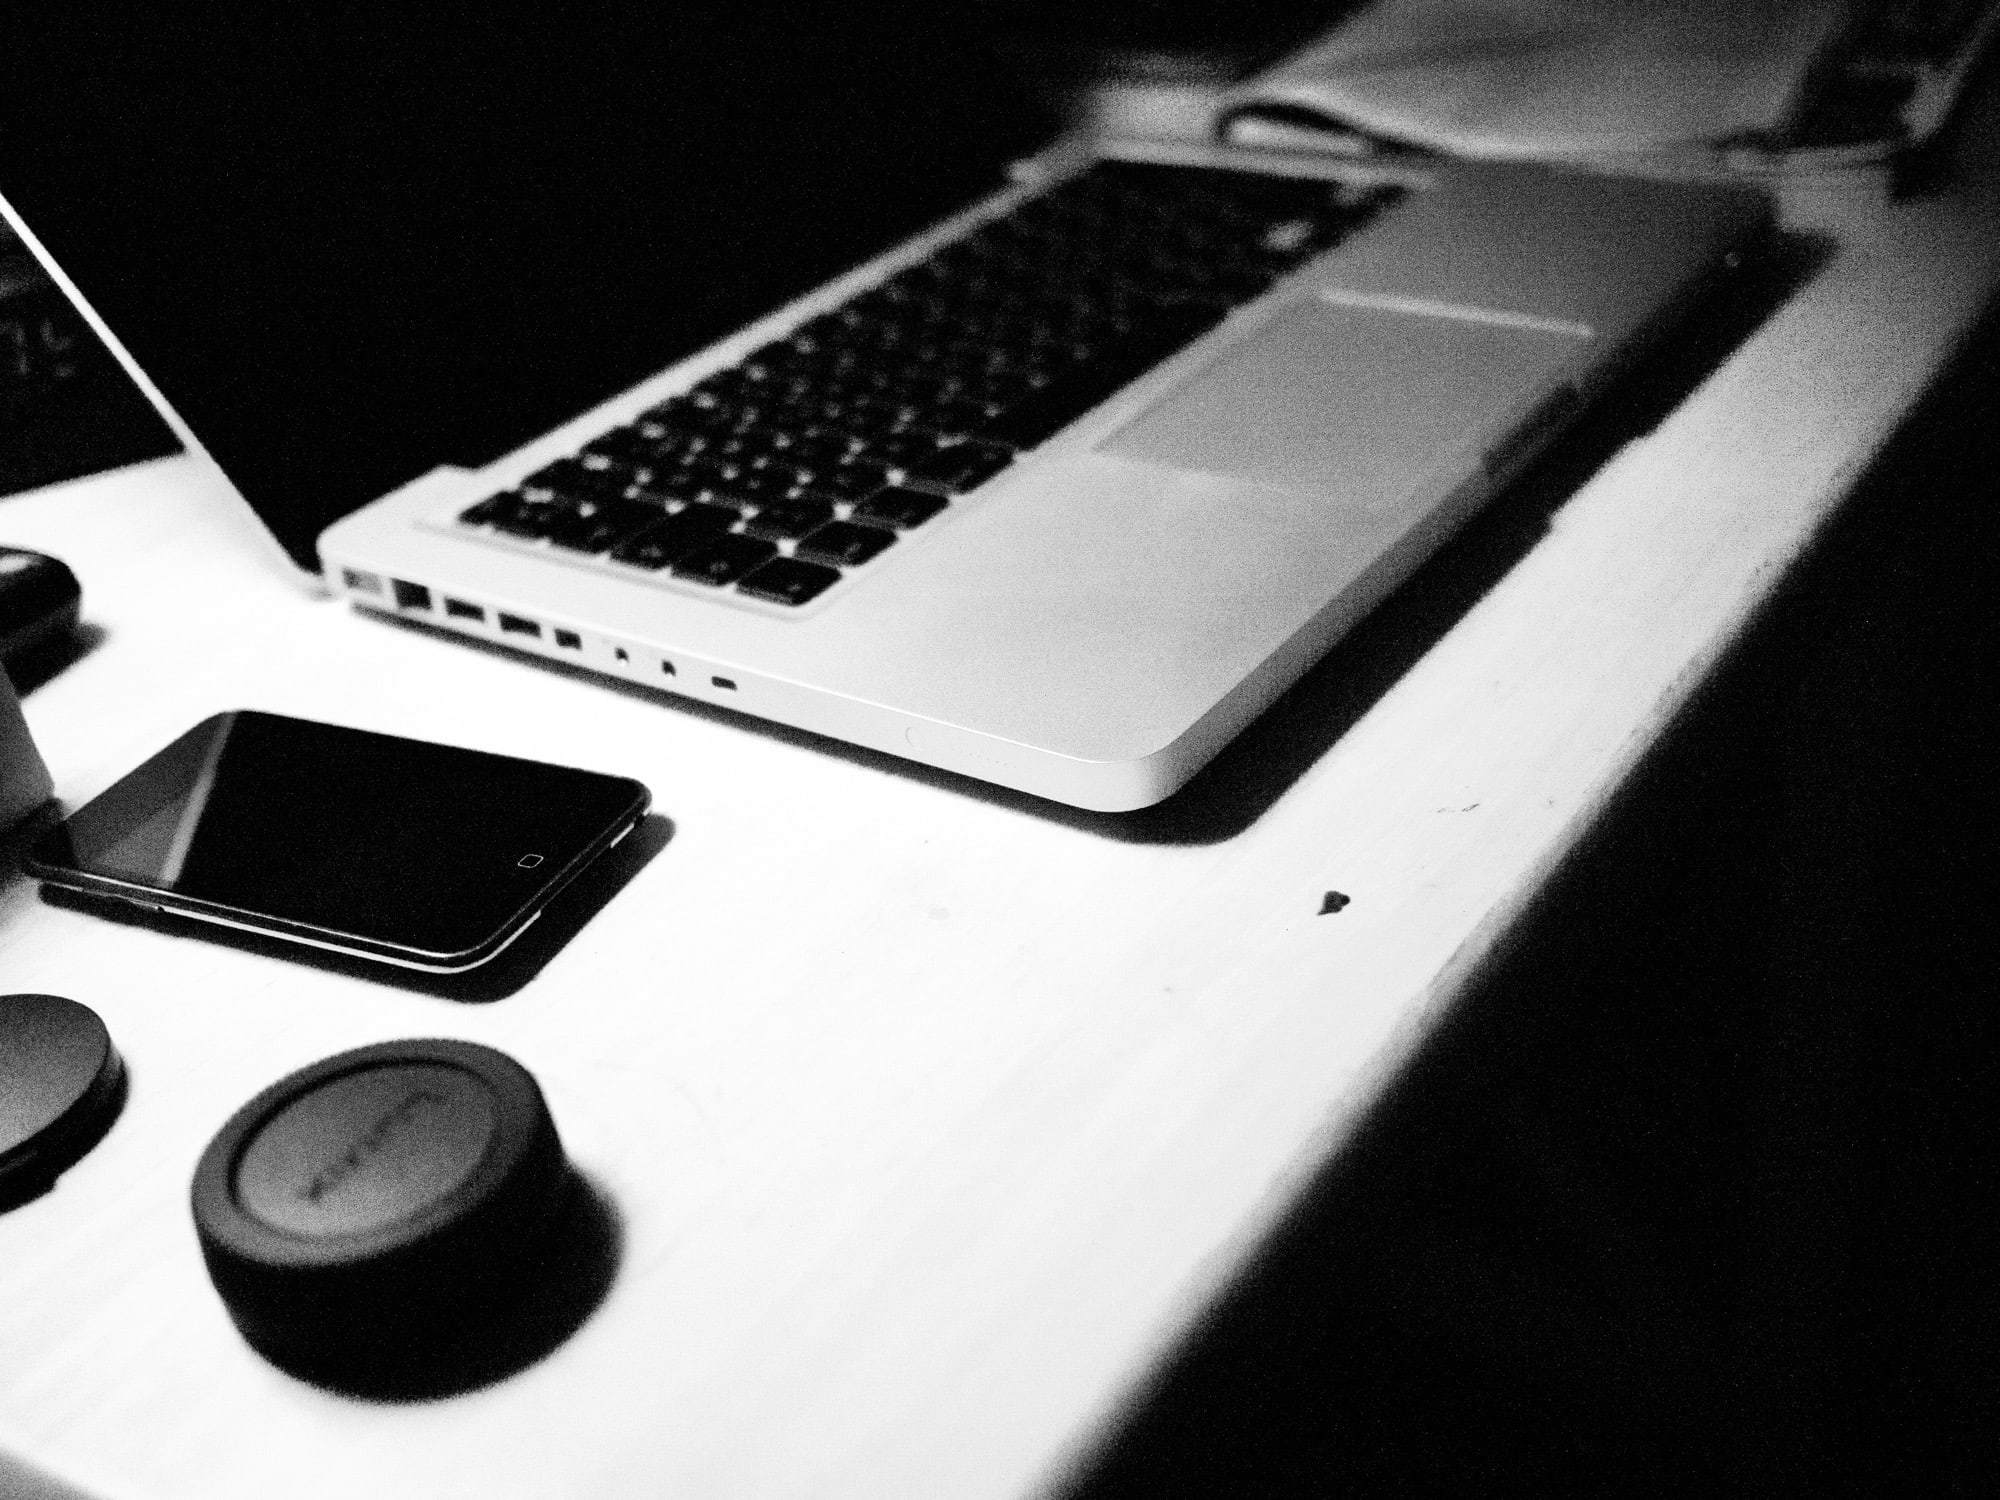 MacBook on desk